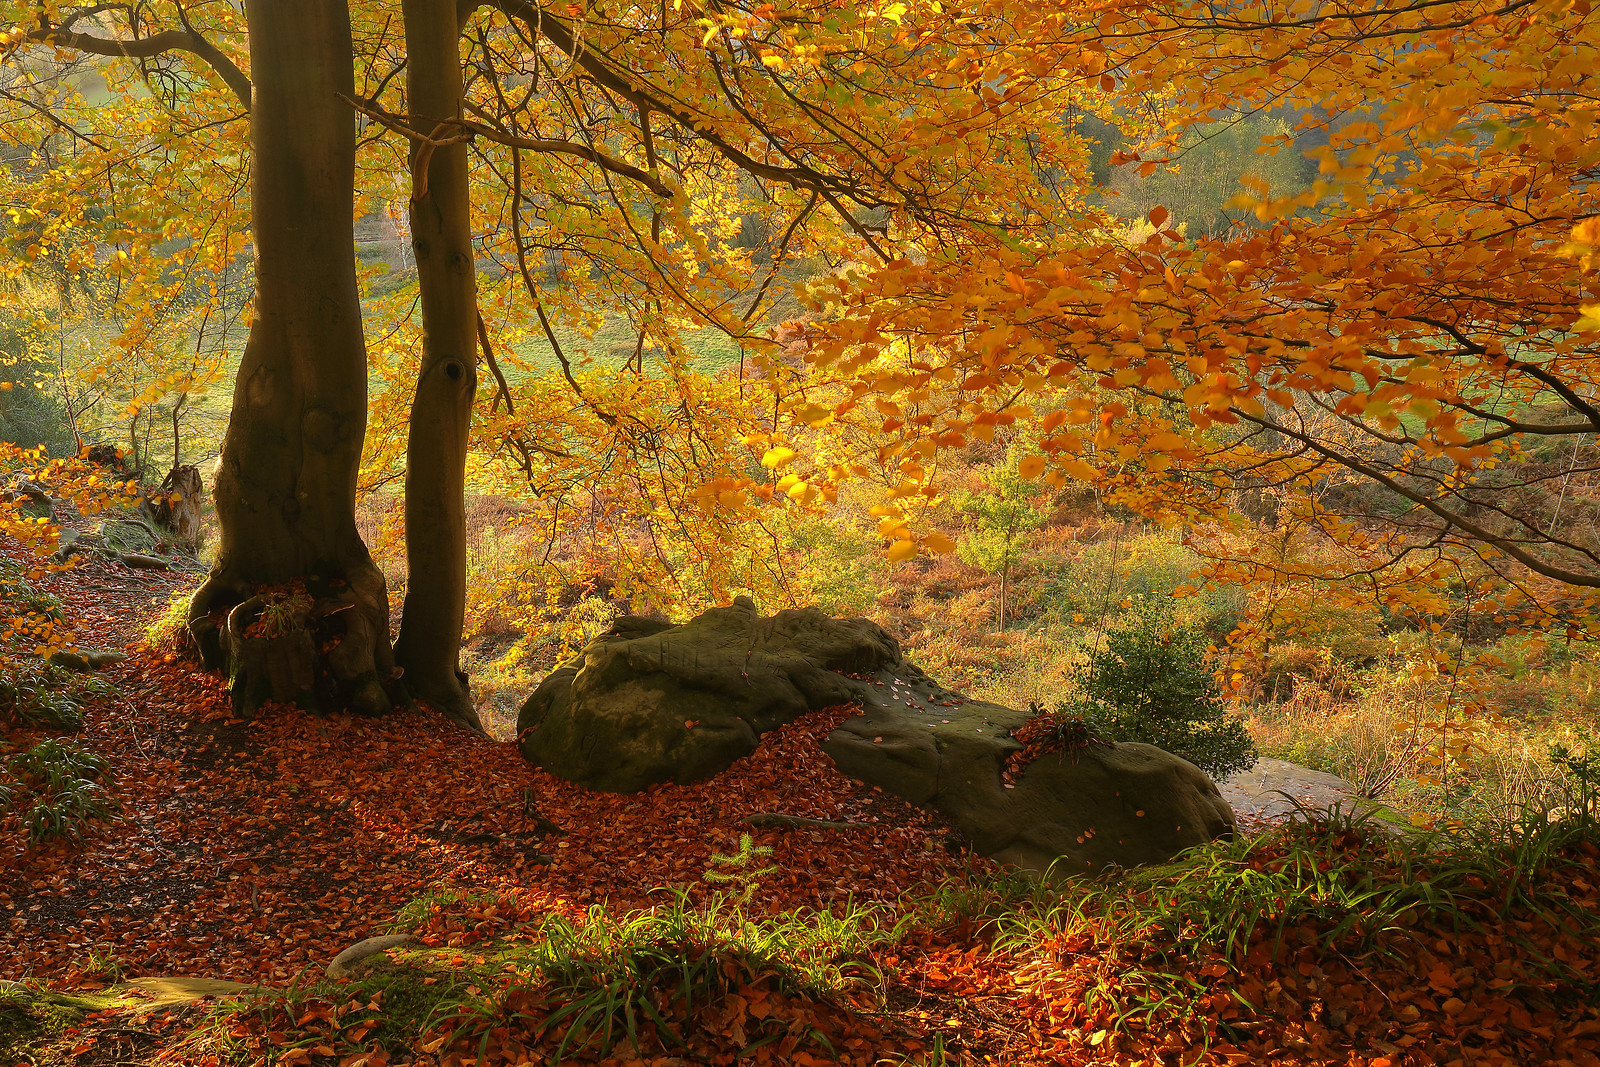 Autumn Woodland in November